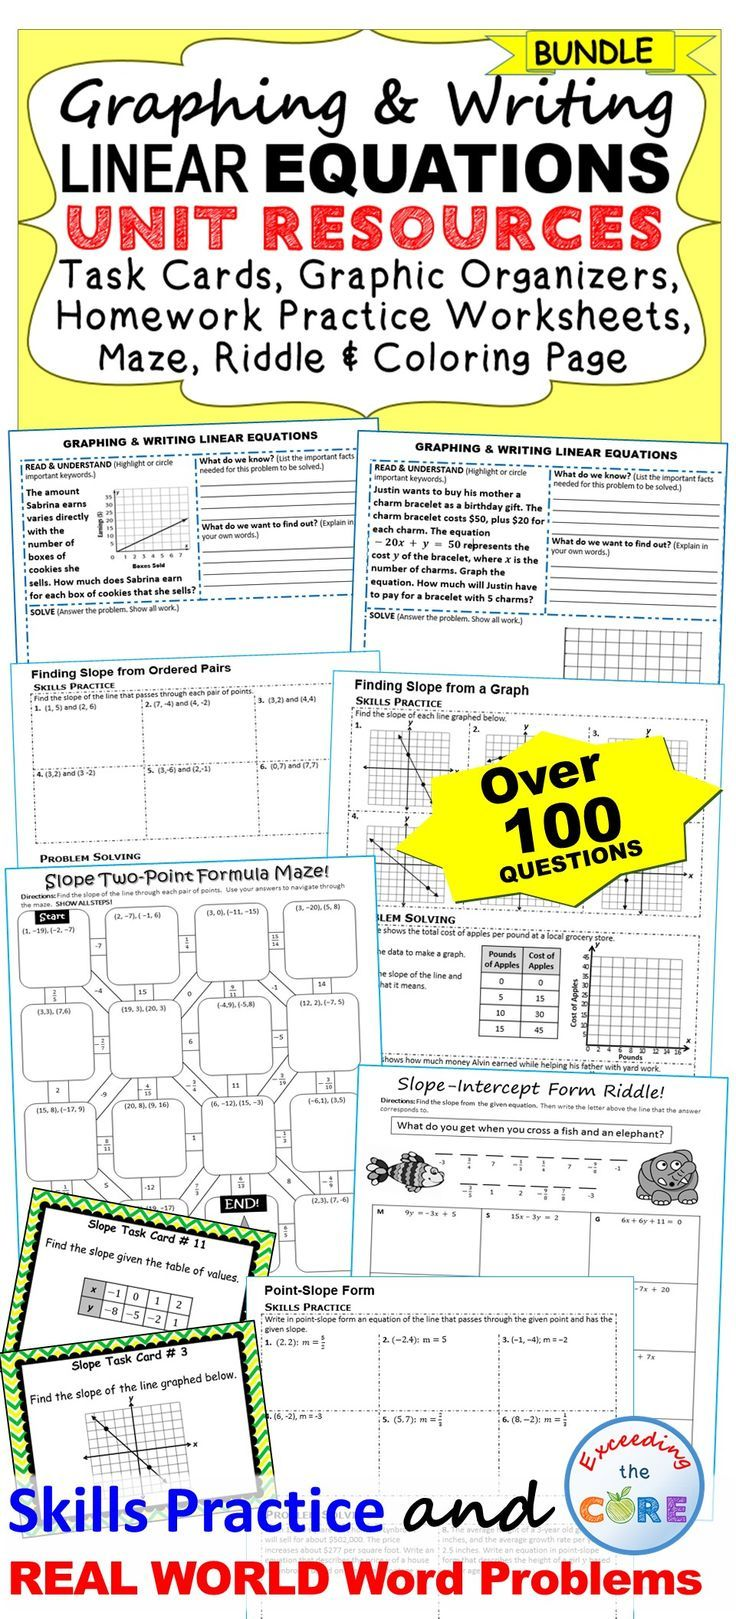 GRAPHING & WRITING LINEAR EQUATIONS + SLOPE Bundle Basic